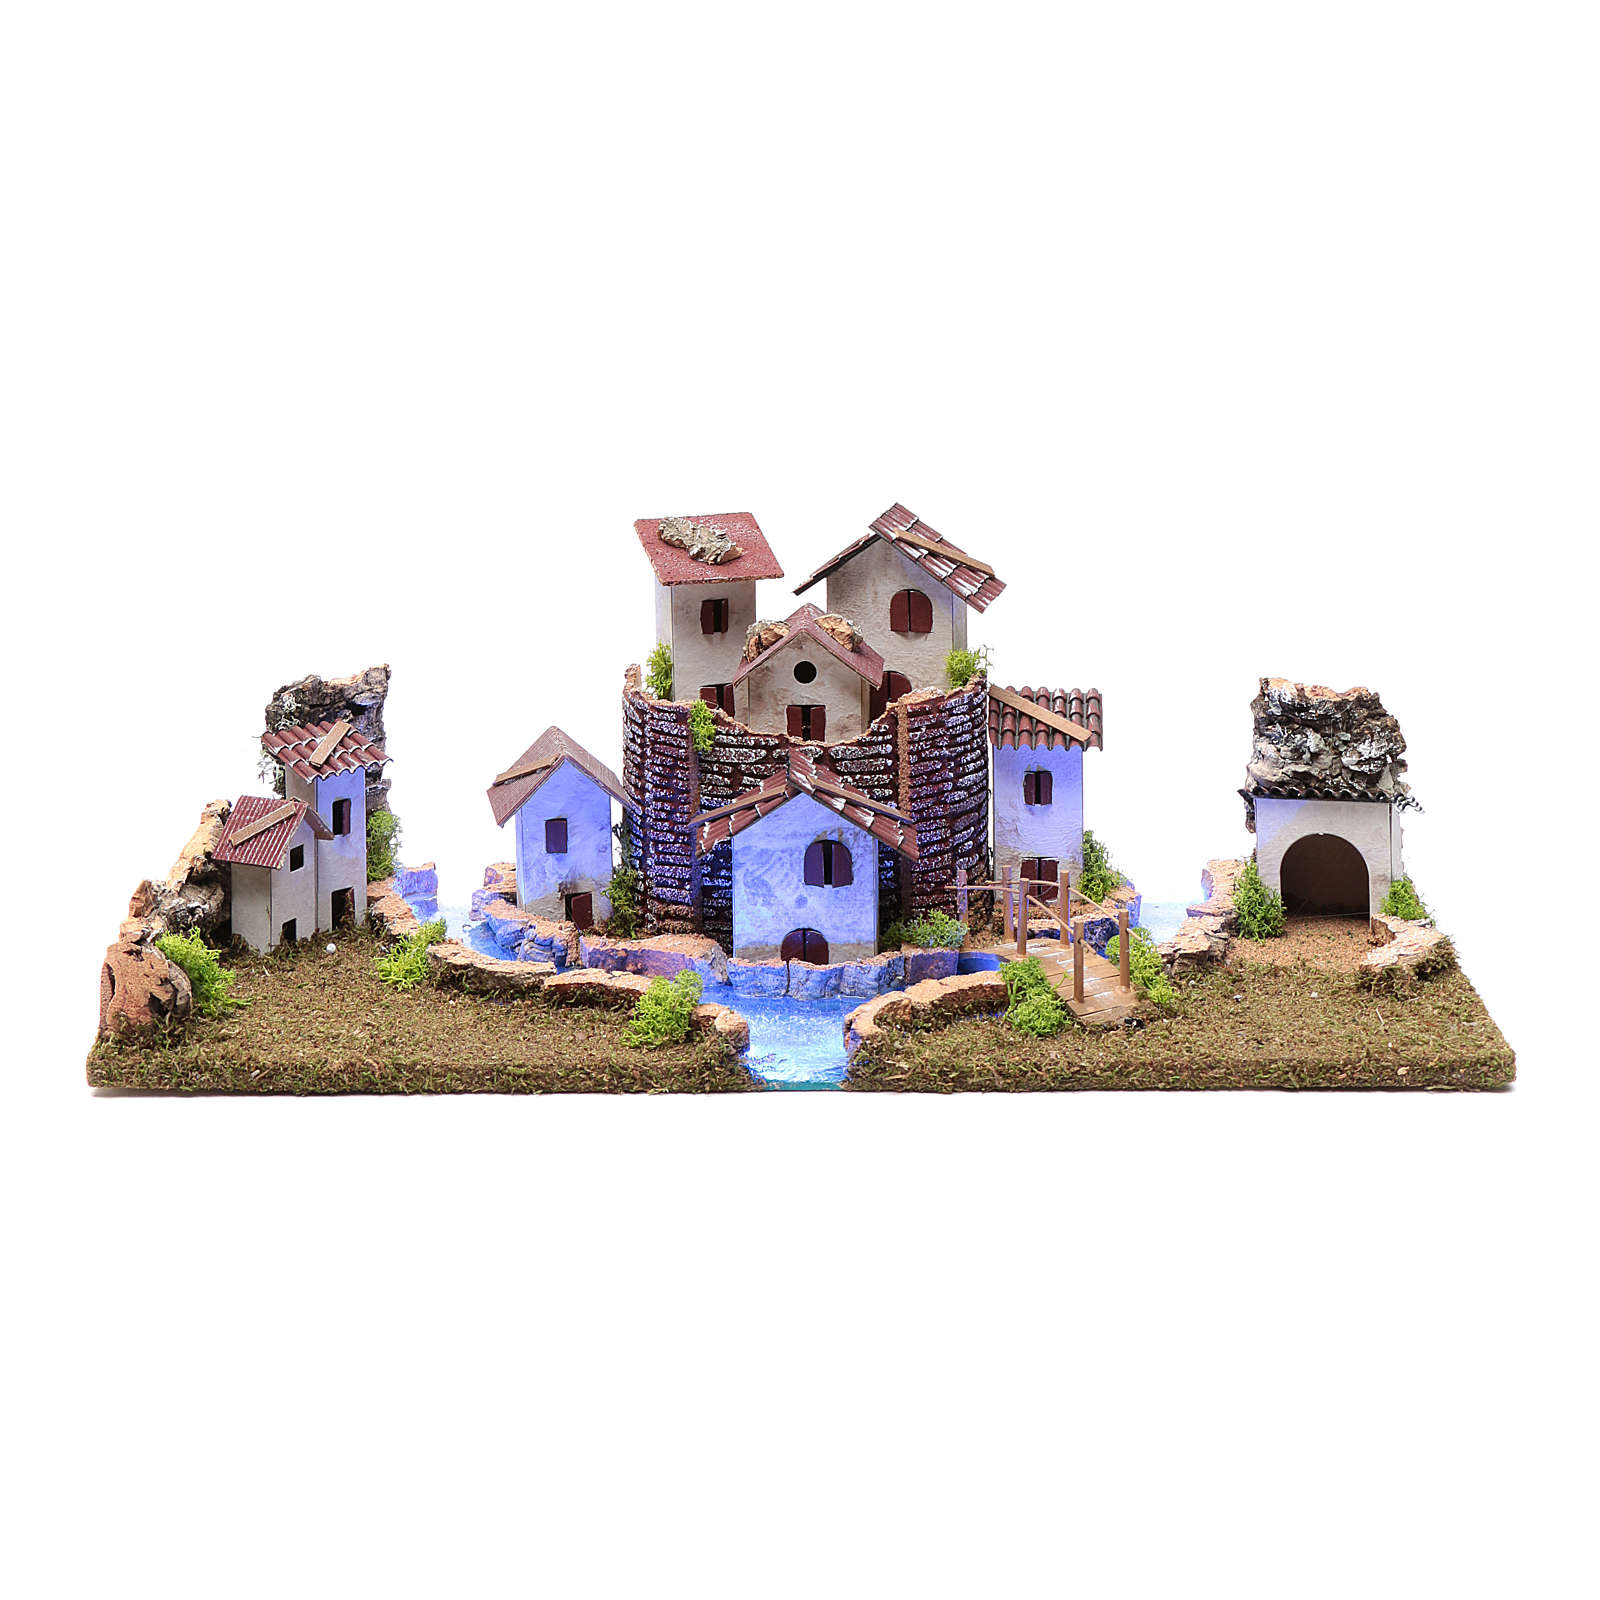 Nativity scene village with illuminated river 18X55X24 cm 4